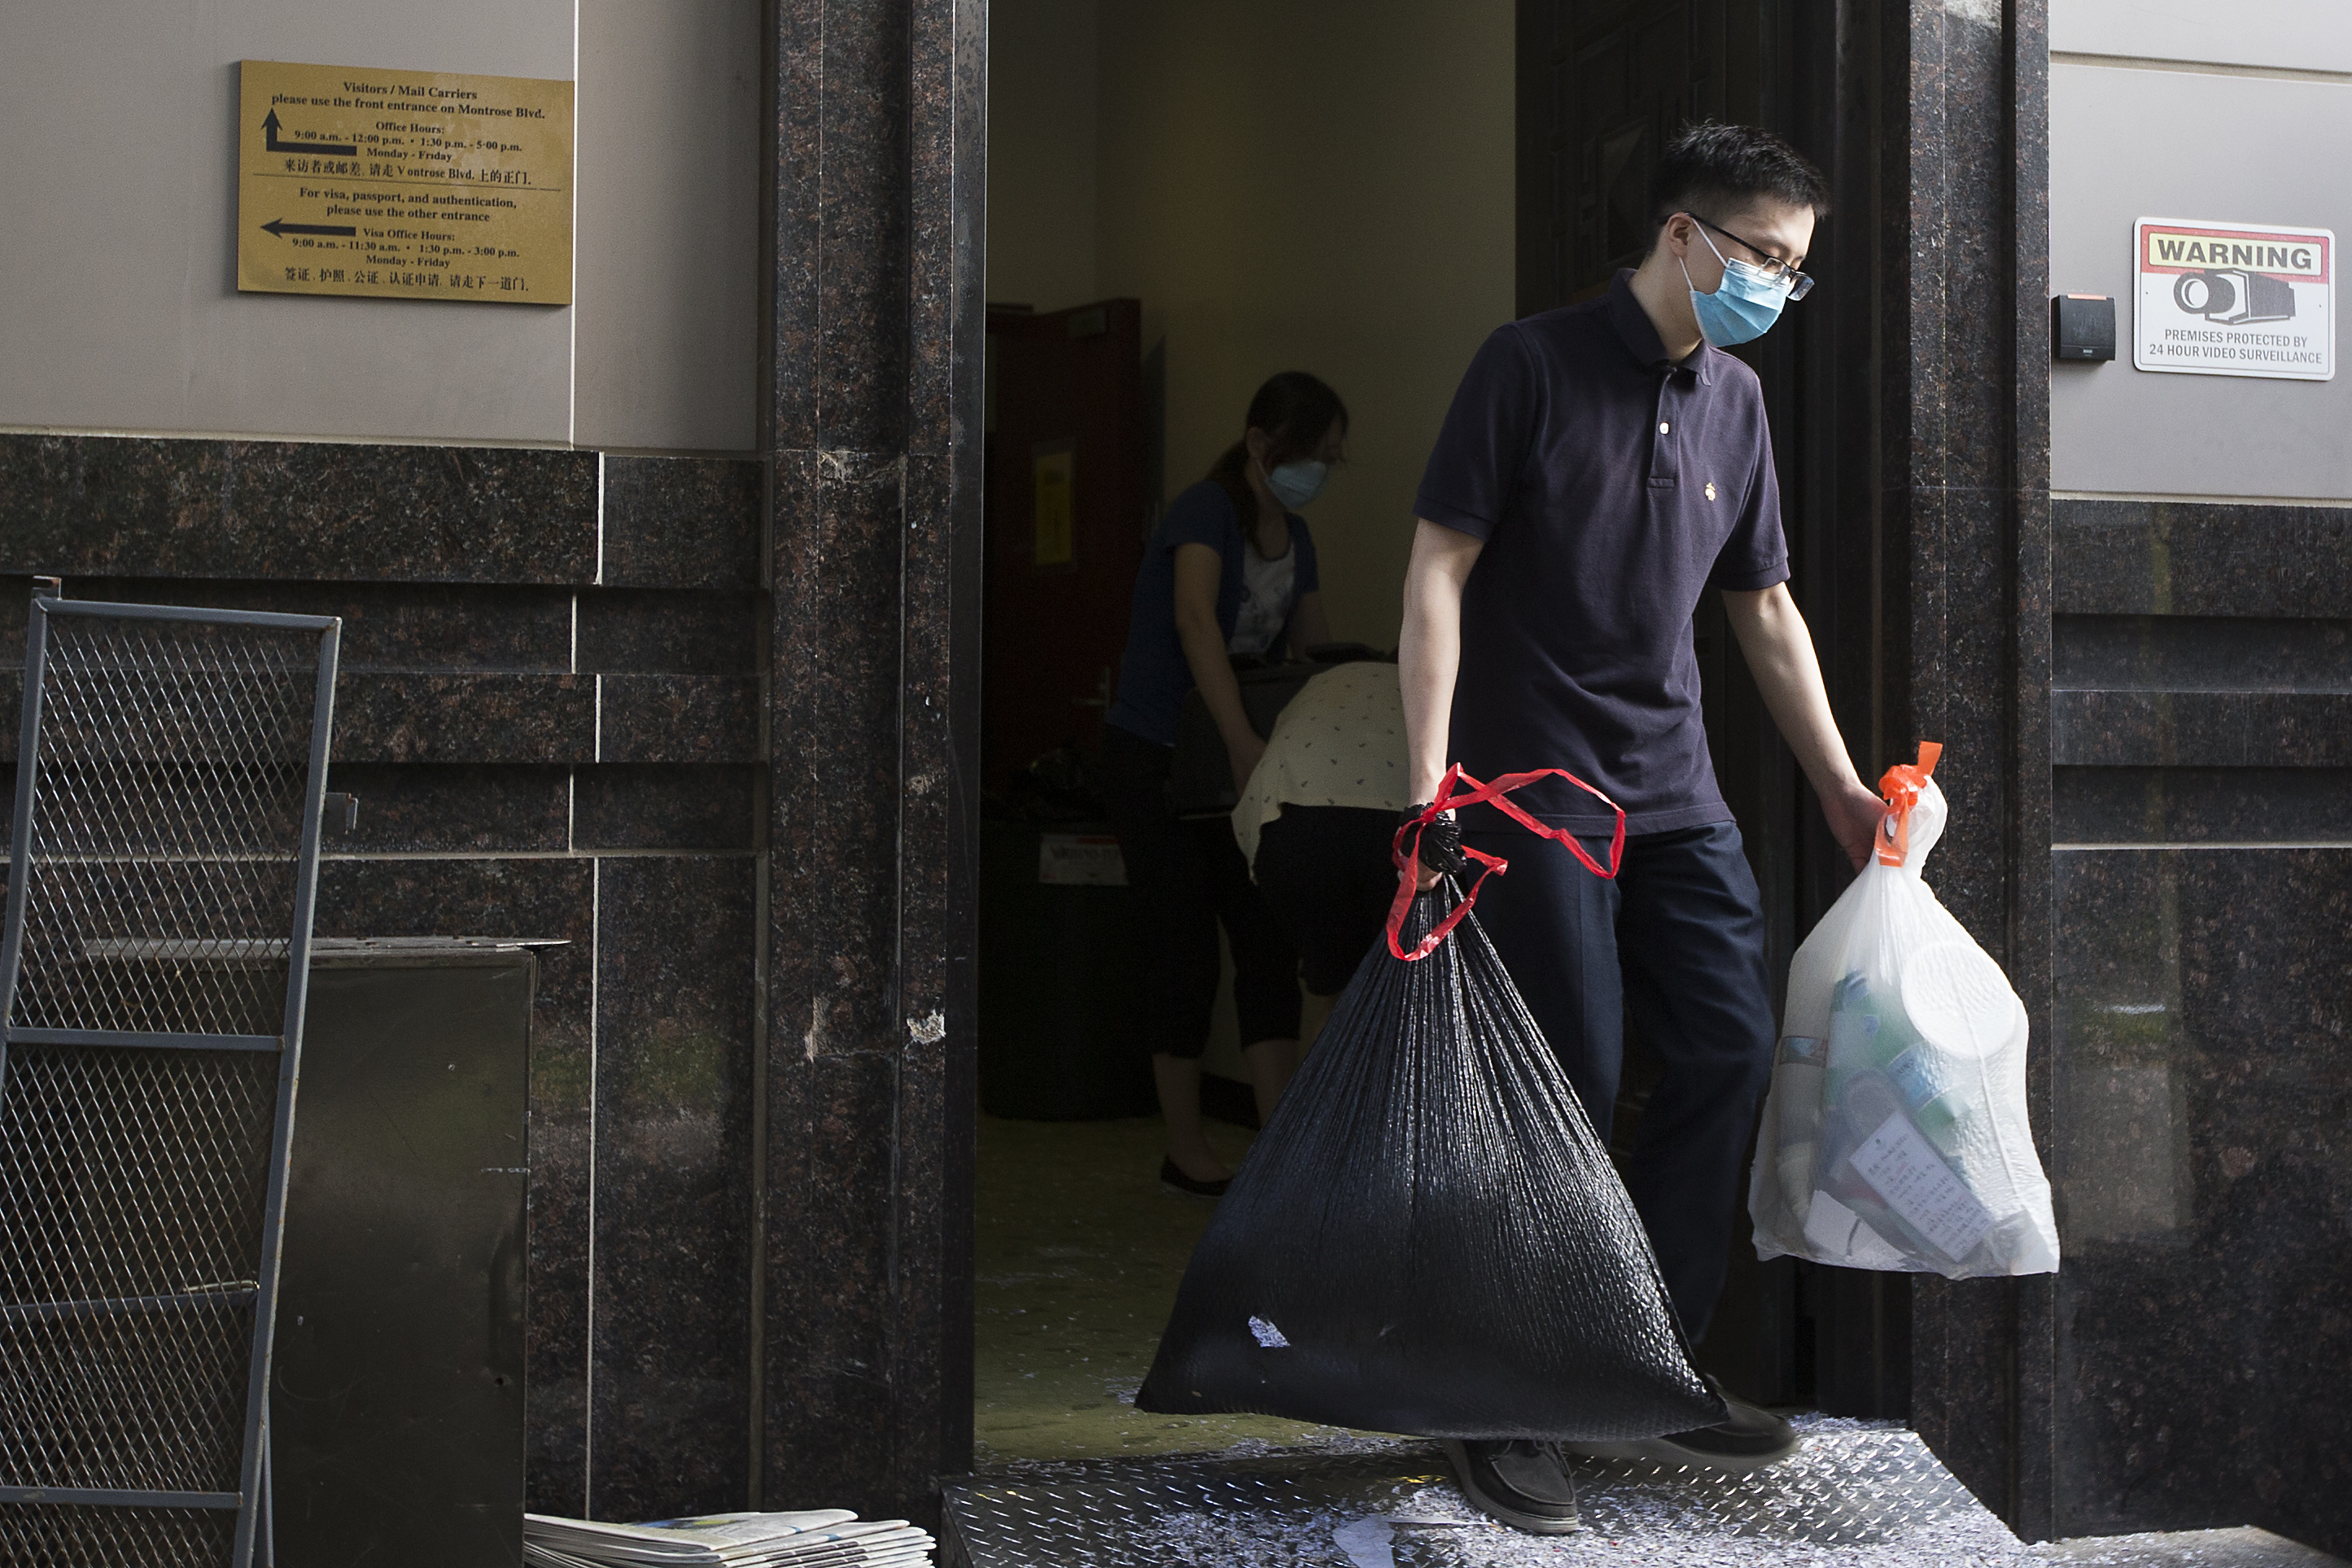 Chinas consulate in Houston cleared out ahead of eviction